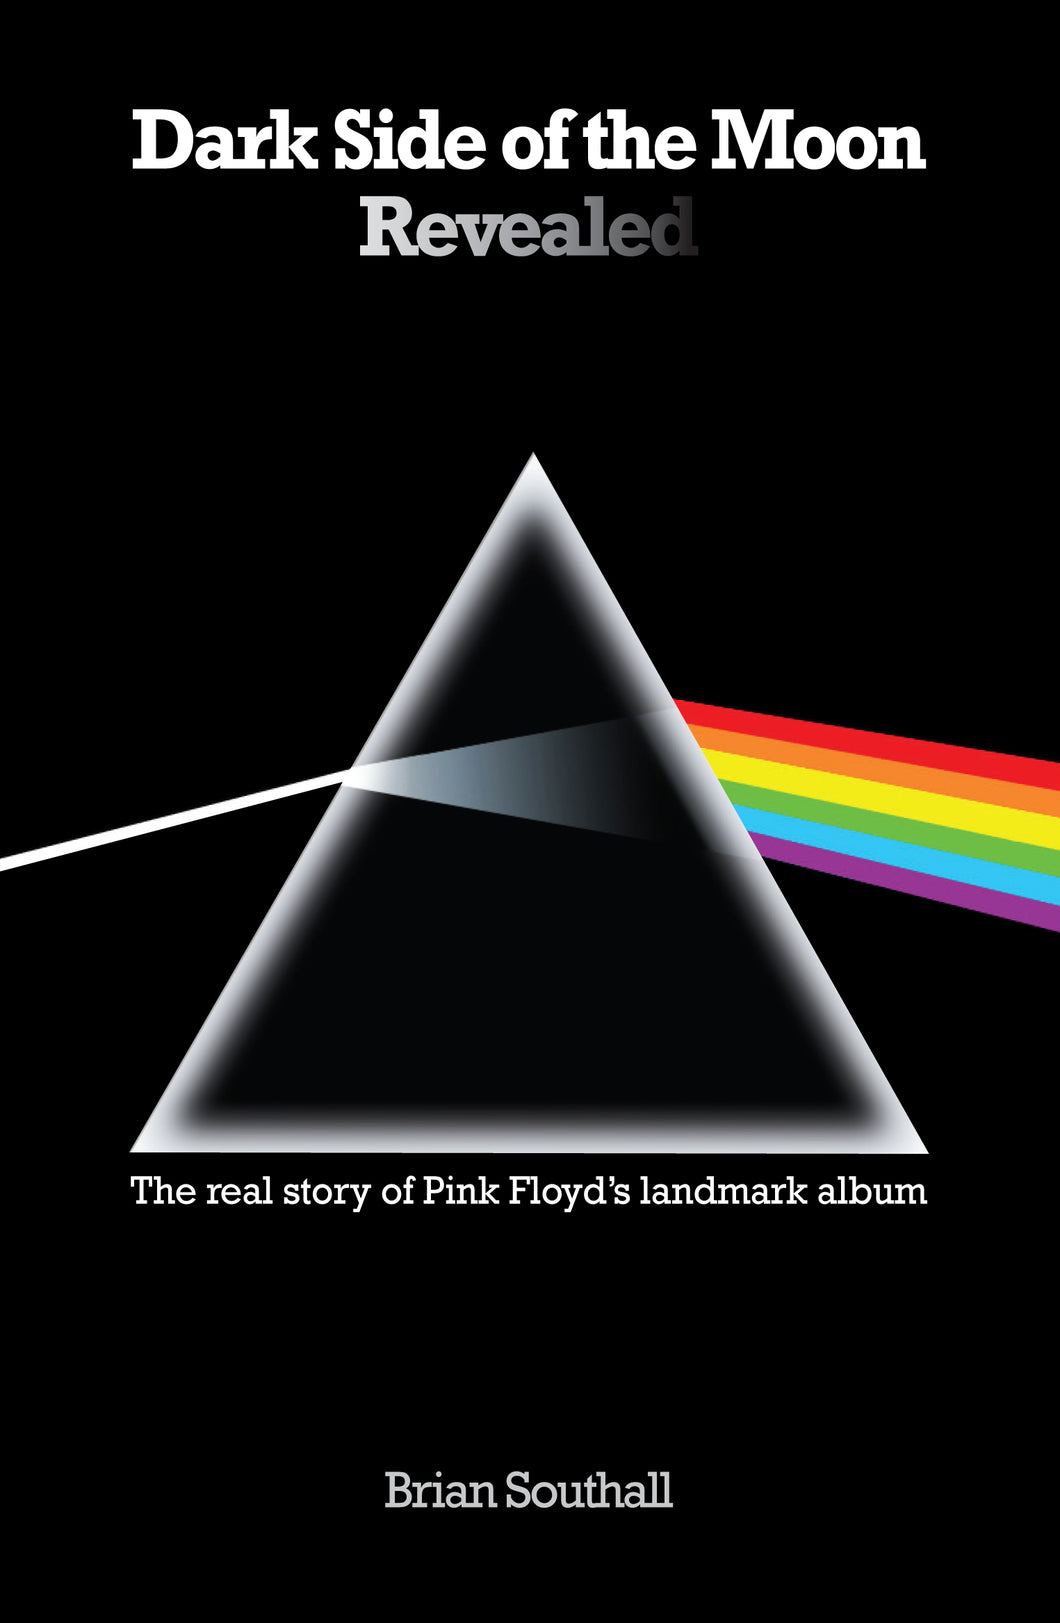 Dark Side of The Moon Revealed